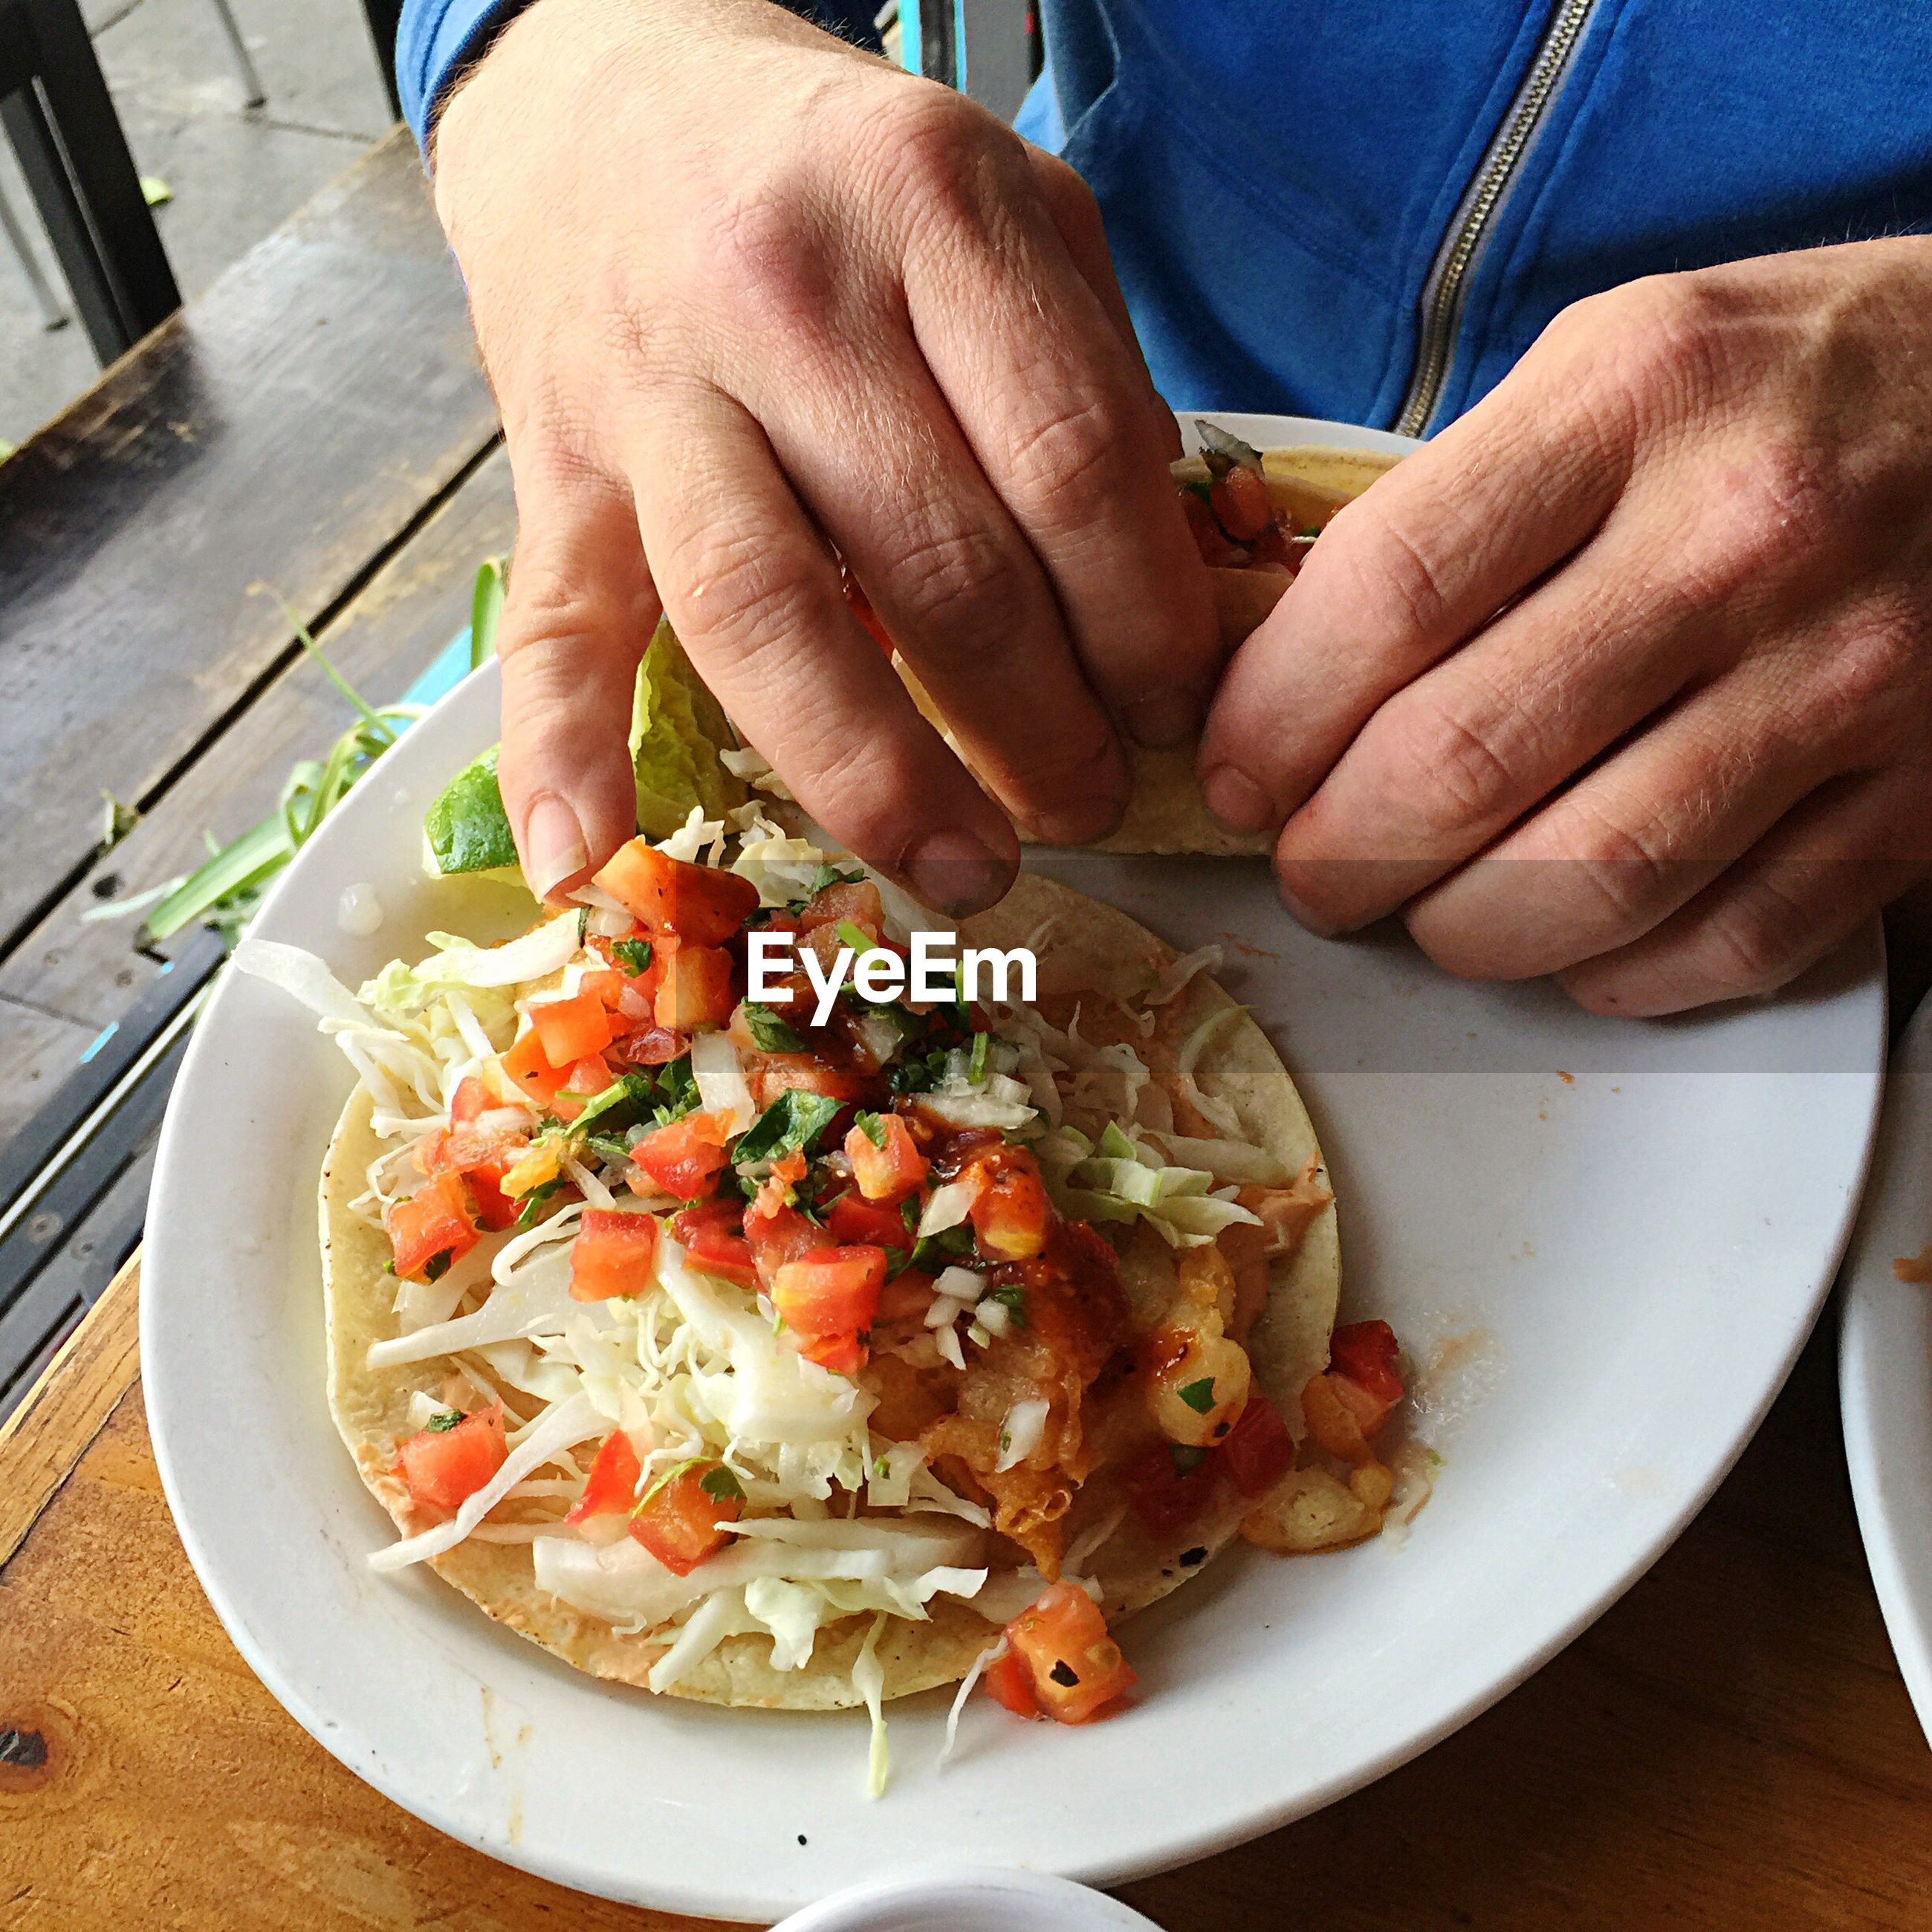 Cropped image of person holding food